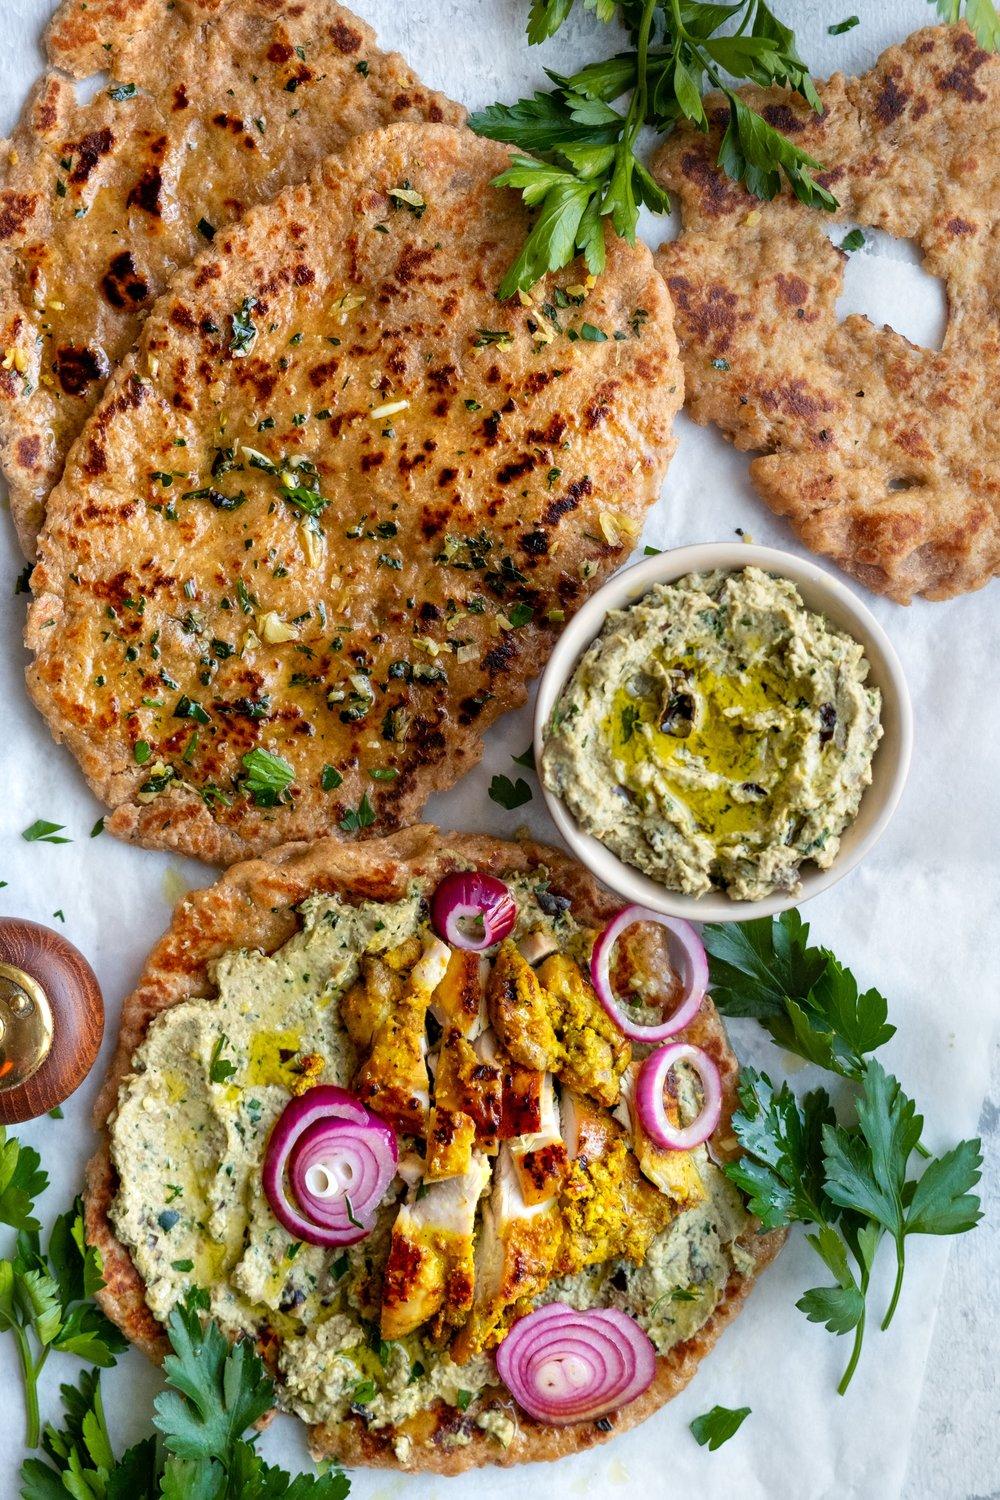 Flat bread served with eggplant dip and roast chicken -